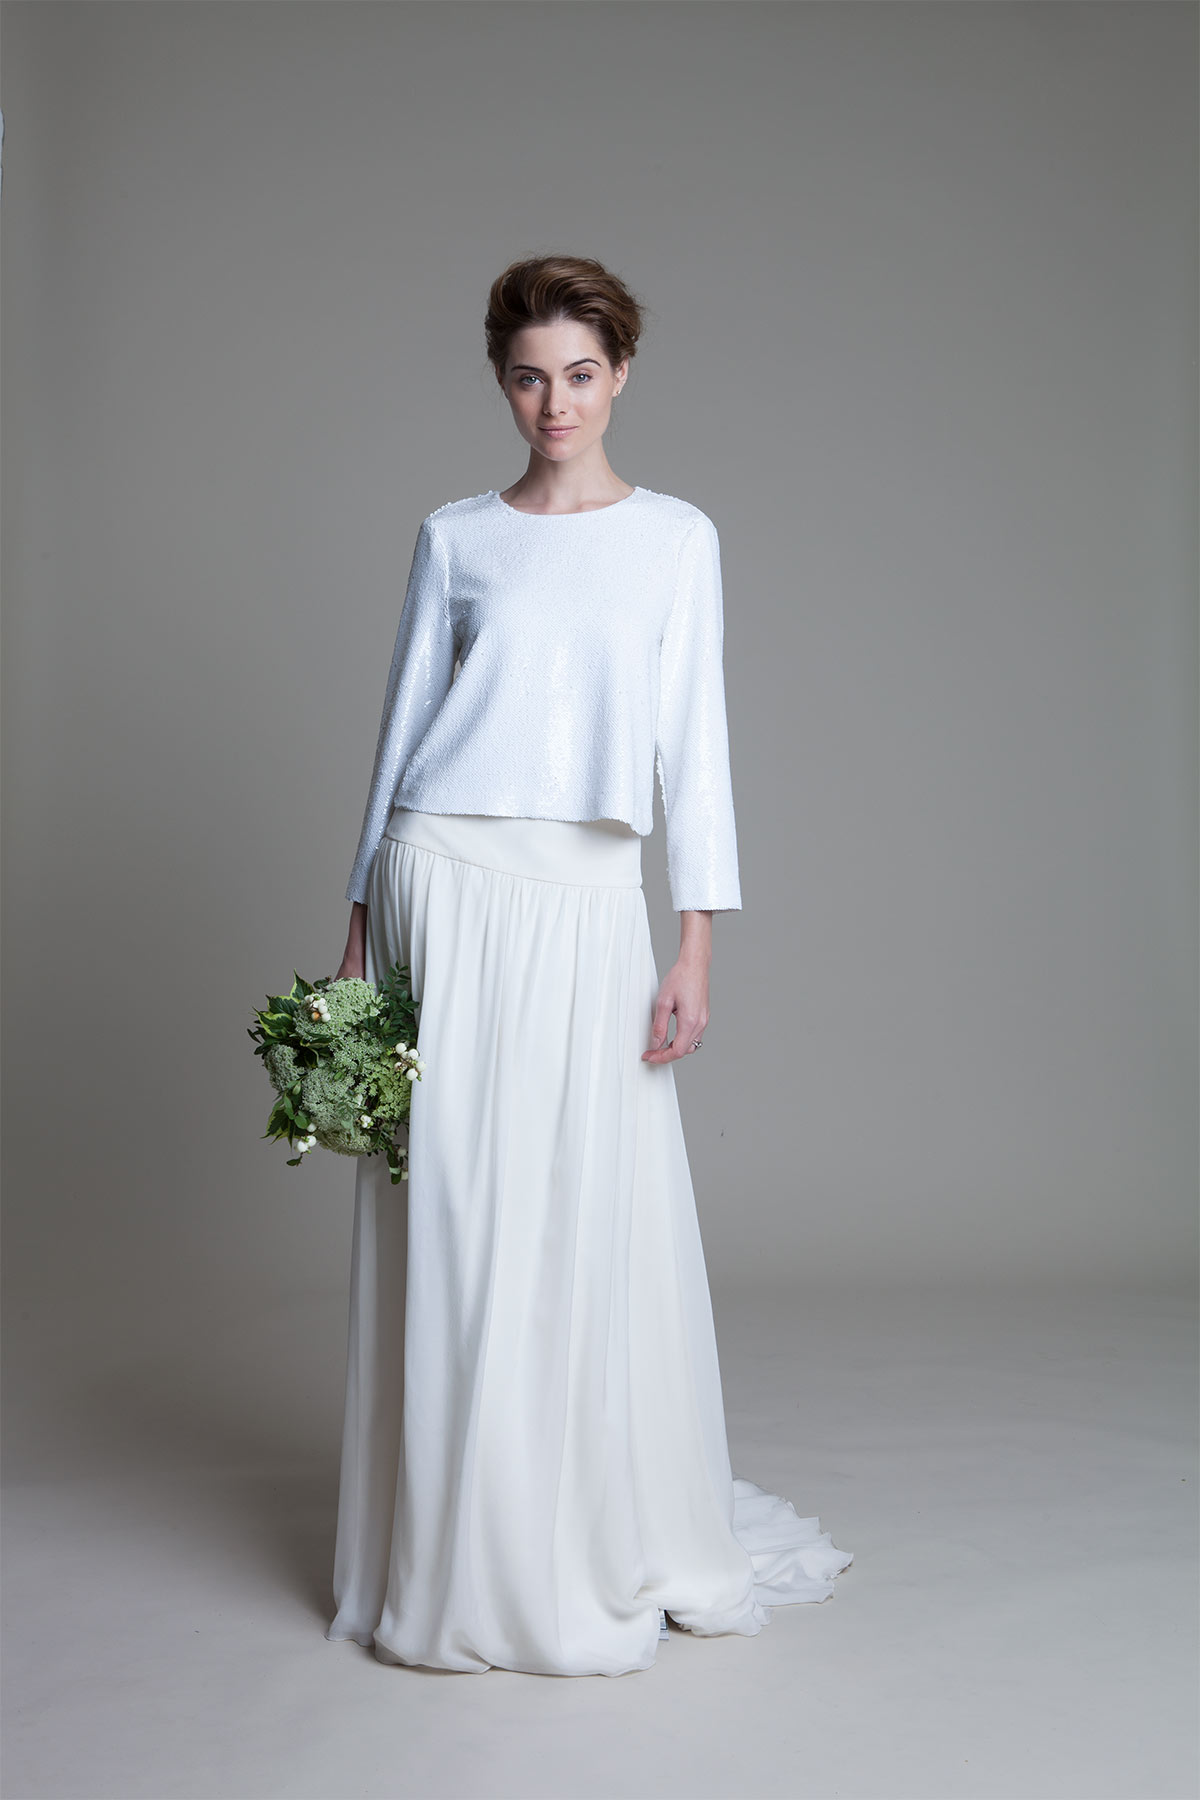 Laura ivory chiffon skirt with drop waist and box sequin long sleeve top wedding dress by Halfpenny London